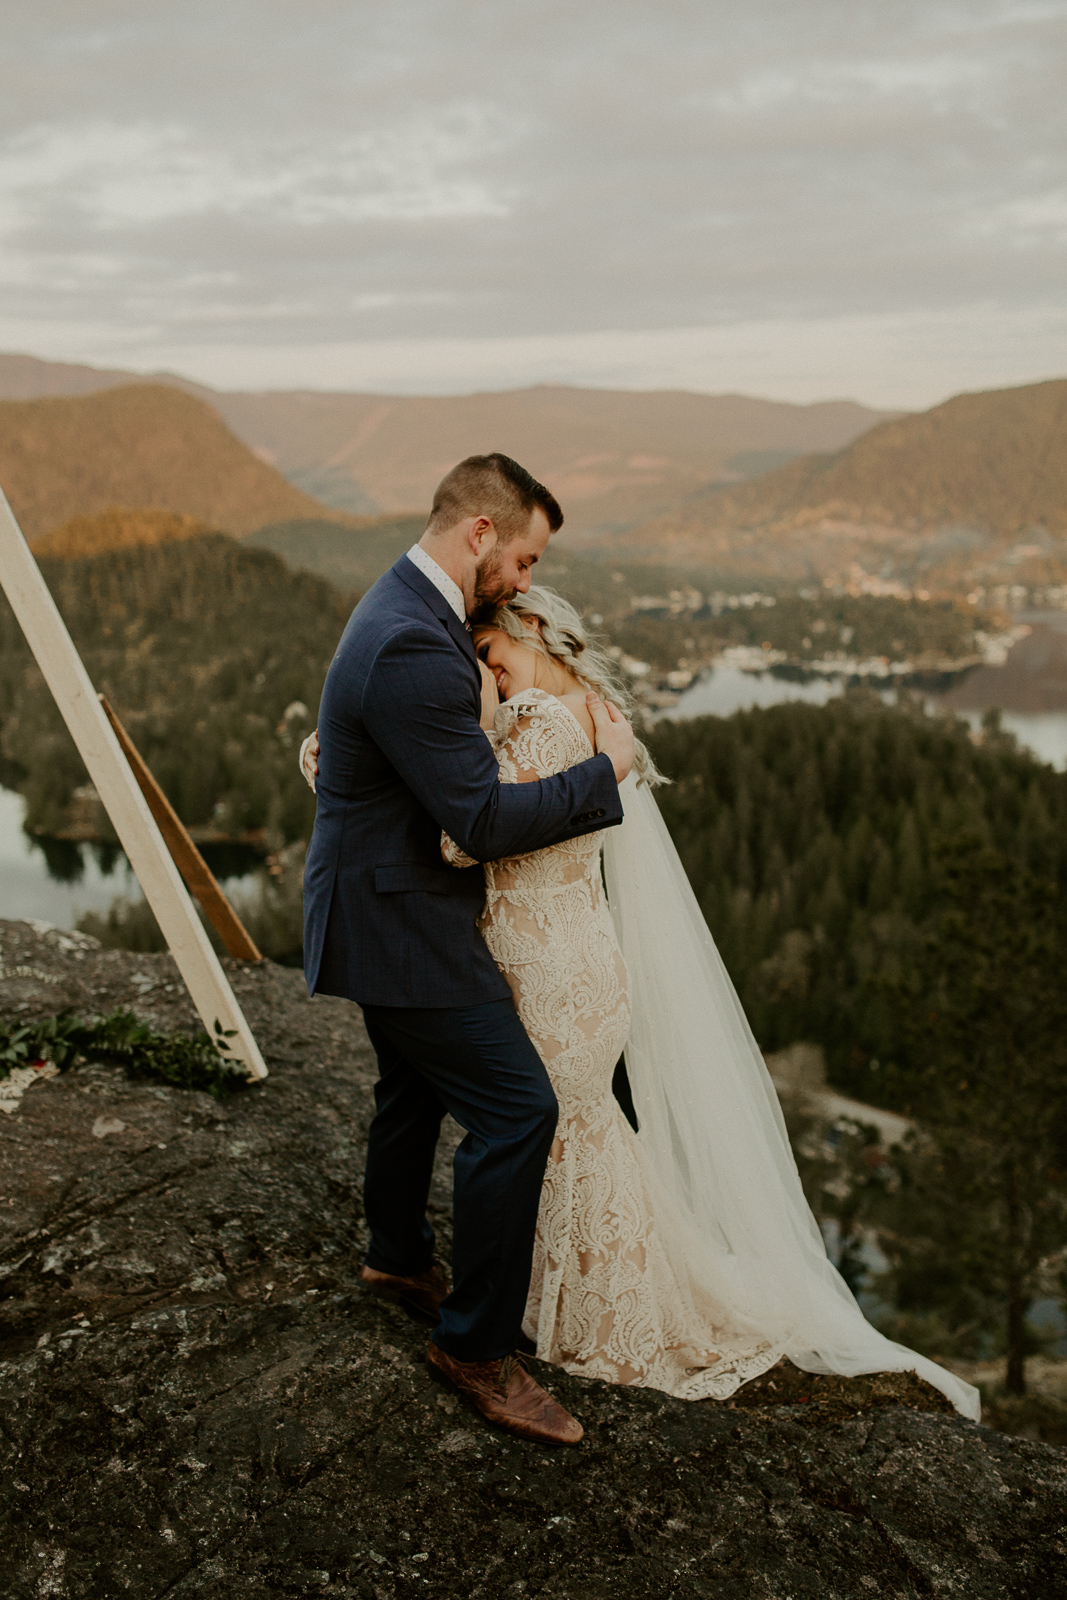 Luke Lambertson Photo_BritishColumbia_Canada_AdventurousCouple_Elopement_IMG-8489.jpg